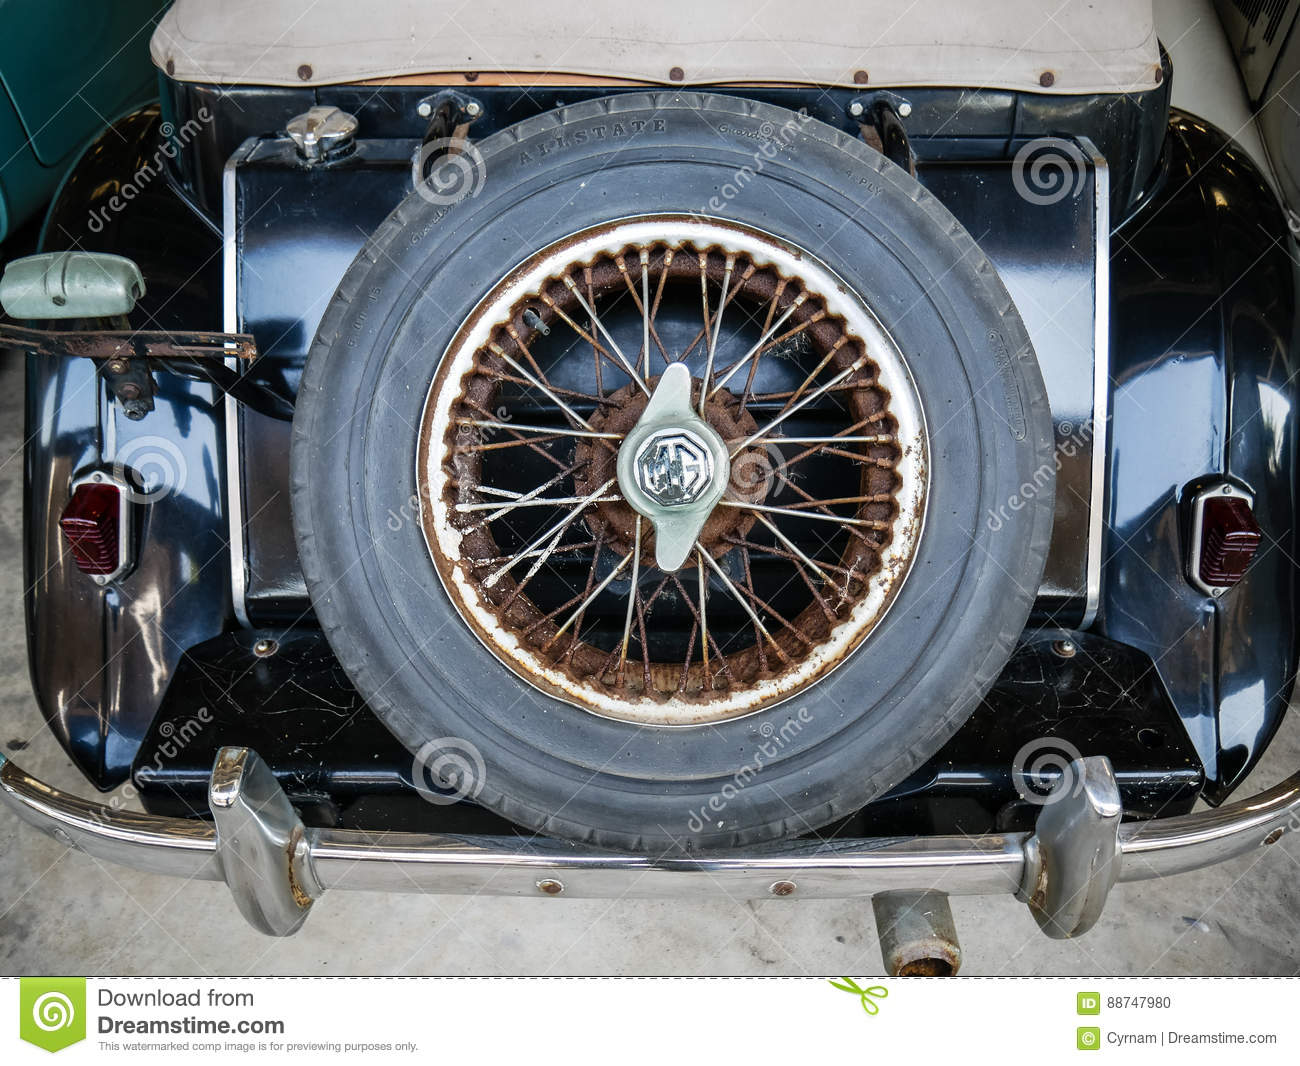 Spare spoke wheel on back trunk of old mythic english car, retro and vintage background